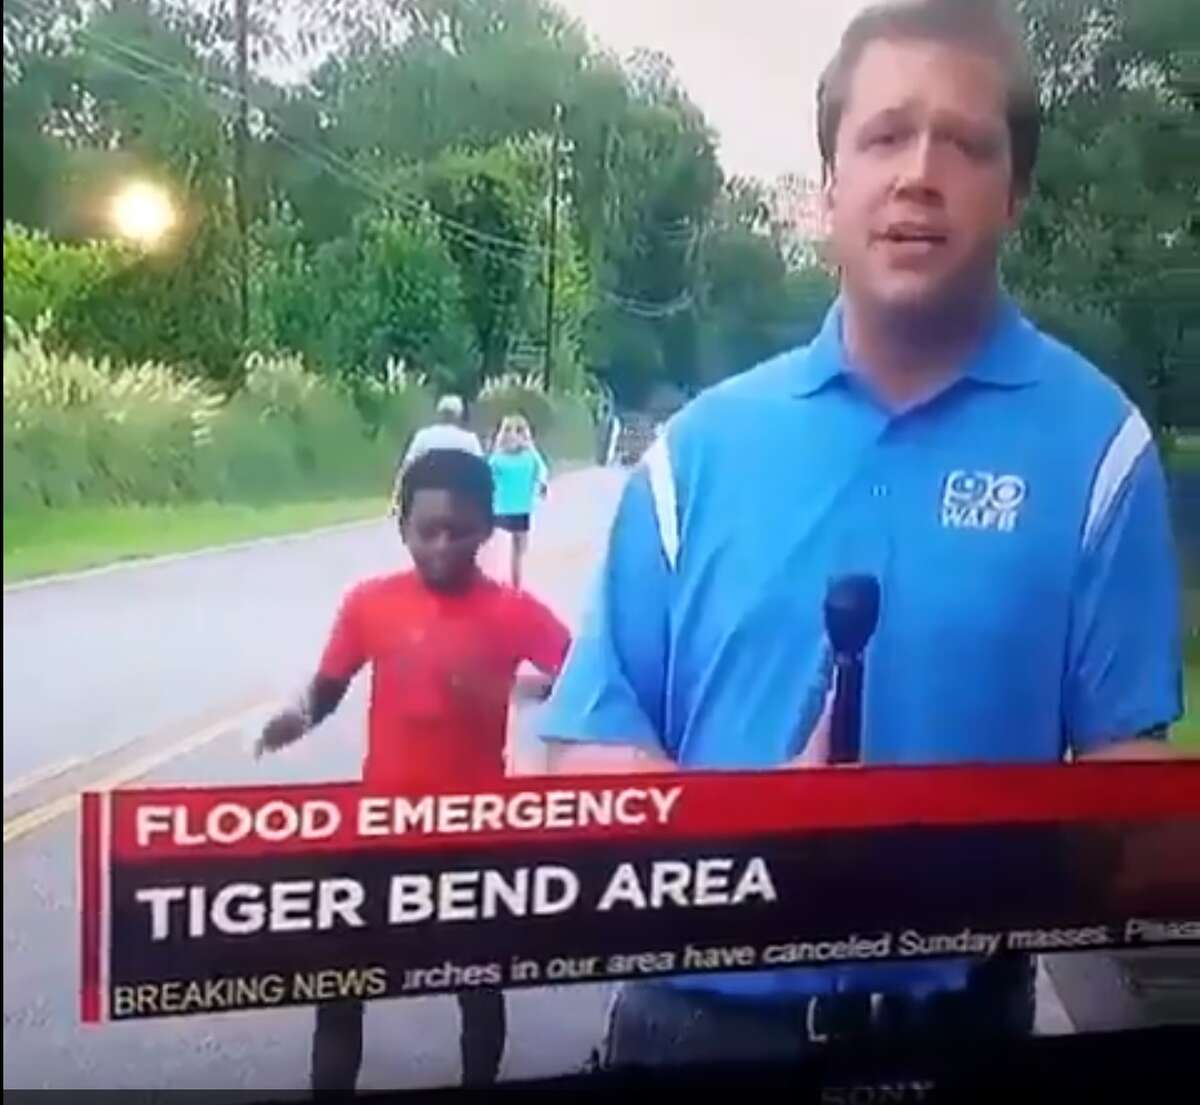 A young boy danced behind a news reporter from WAFB, a CBS-affiliate in Baton Rouge, during a broadcast Aug. 14, 2016.